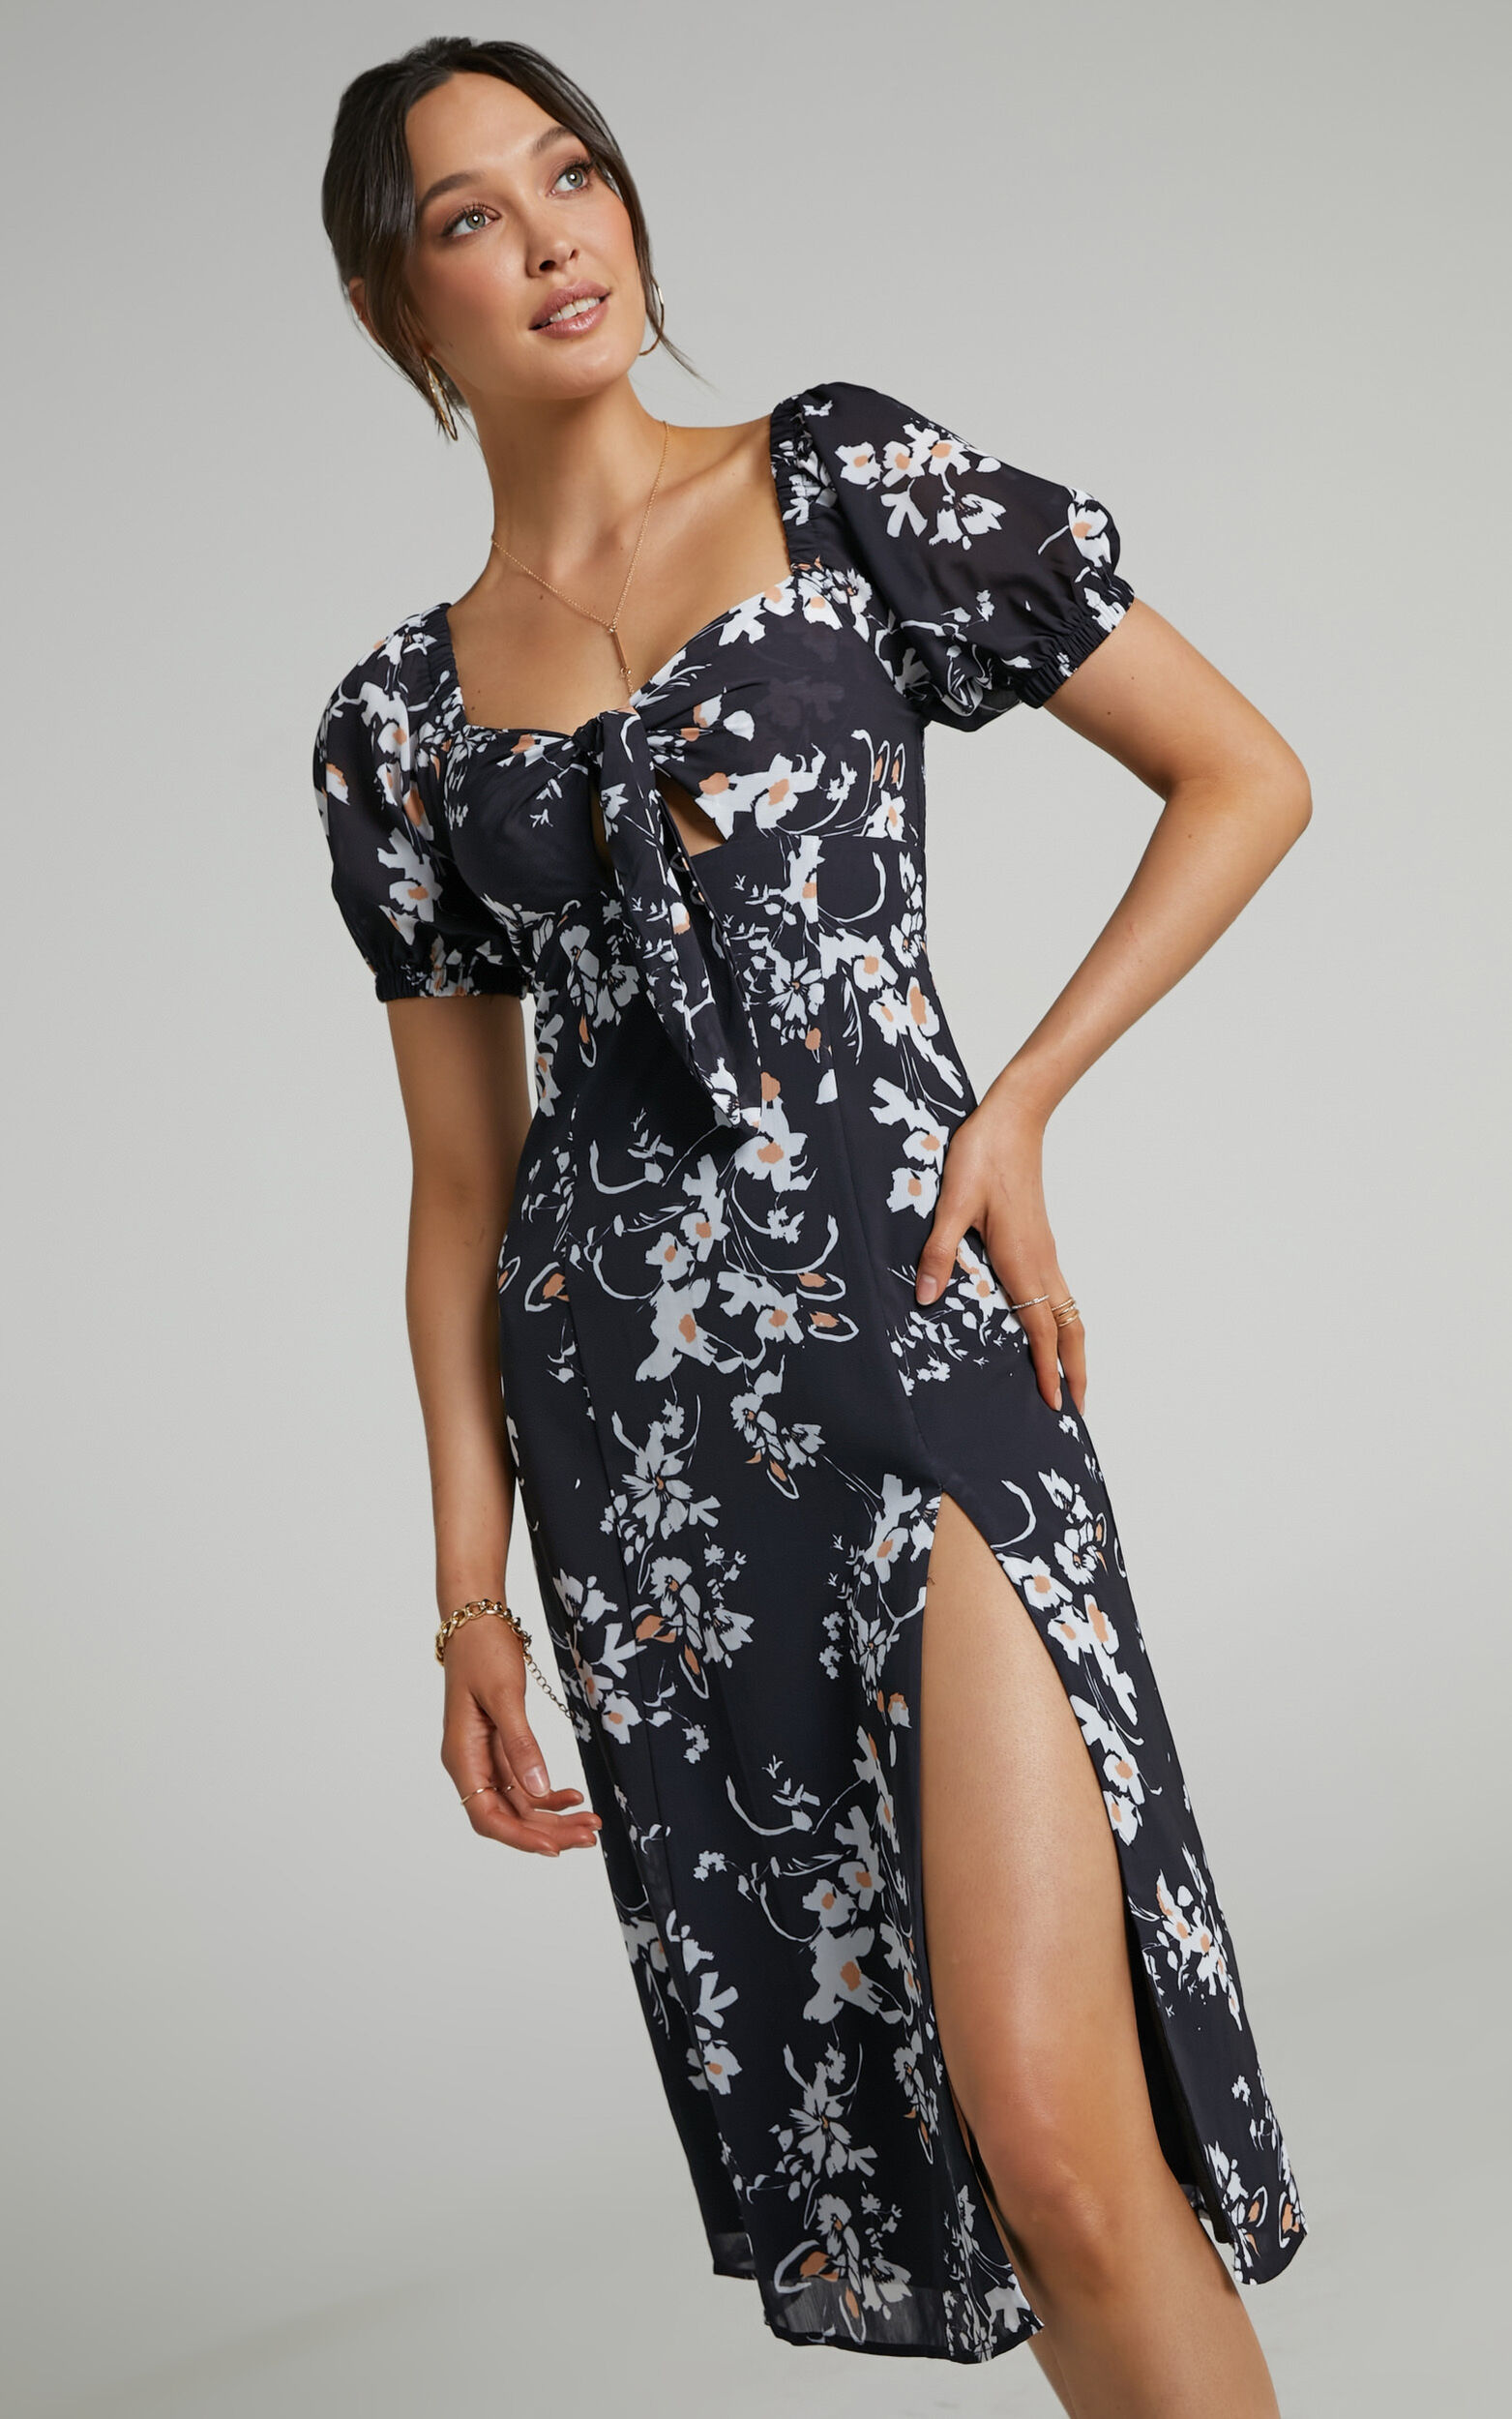 Cyia Tie Bust Midi Dress with Leg Slit in Black Floral - 04, BLK2, super-hi-res image number null